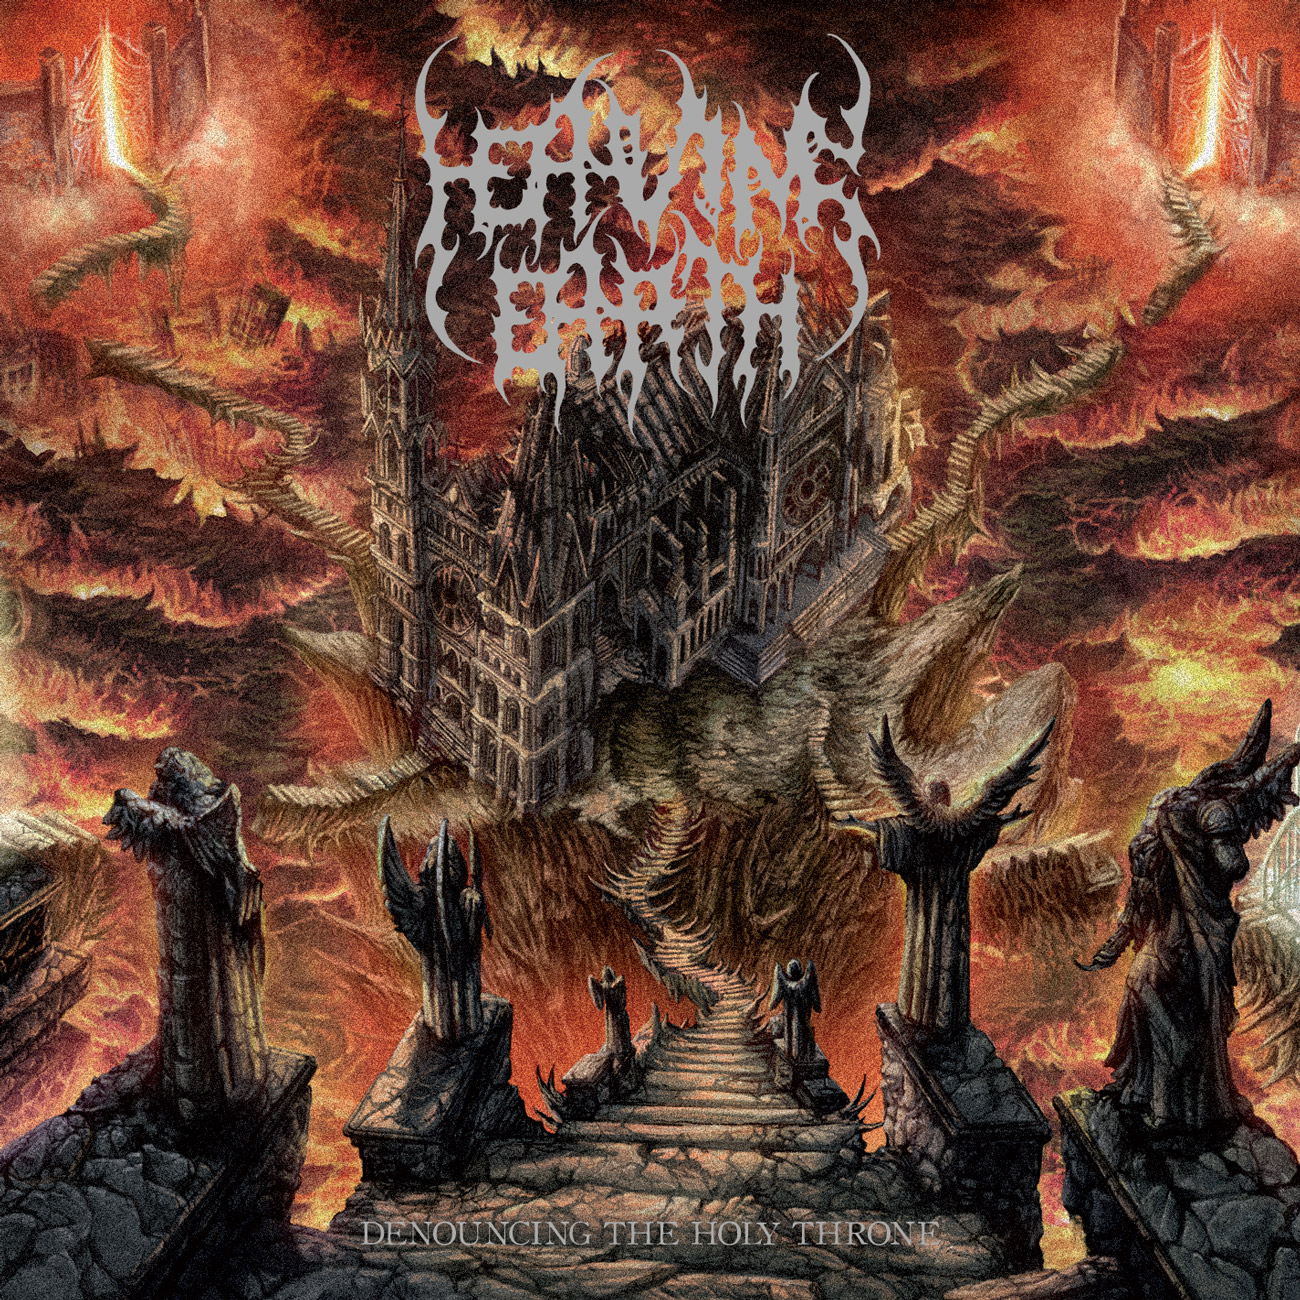 Heaving Earth – Denouncing the Holy Throne Review